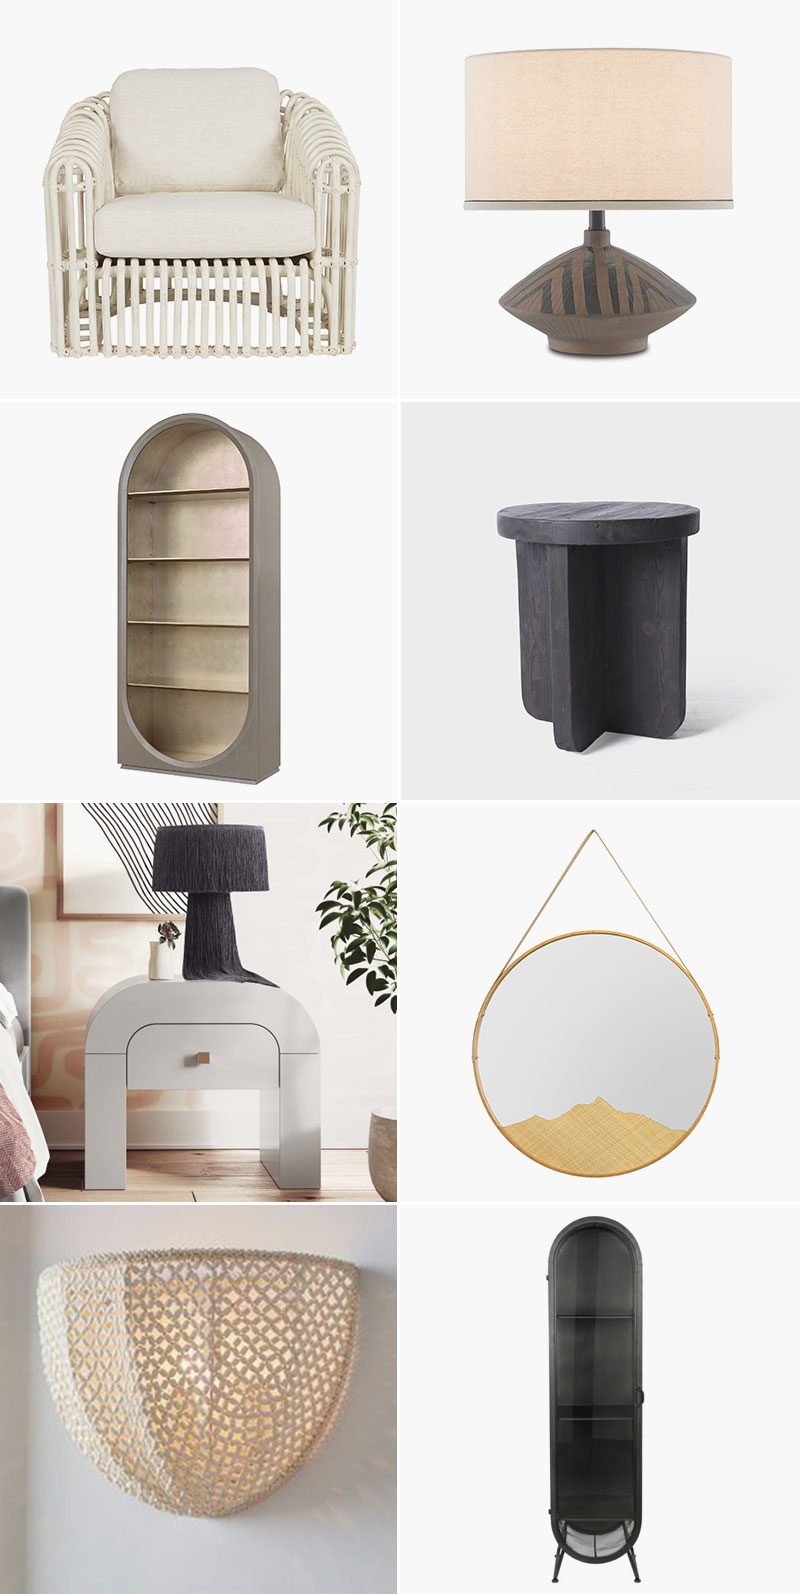 25 New Designs Seen and Loved at High Point Market — home decor and furniture inspiration and trends from Style Spotter Joanna Hawley-McBride #HPMKT #hpmktSS #highpointmarket #furnituretrends #designtrends